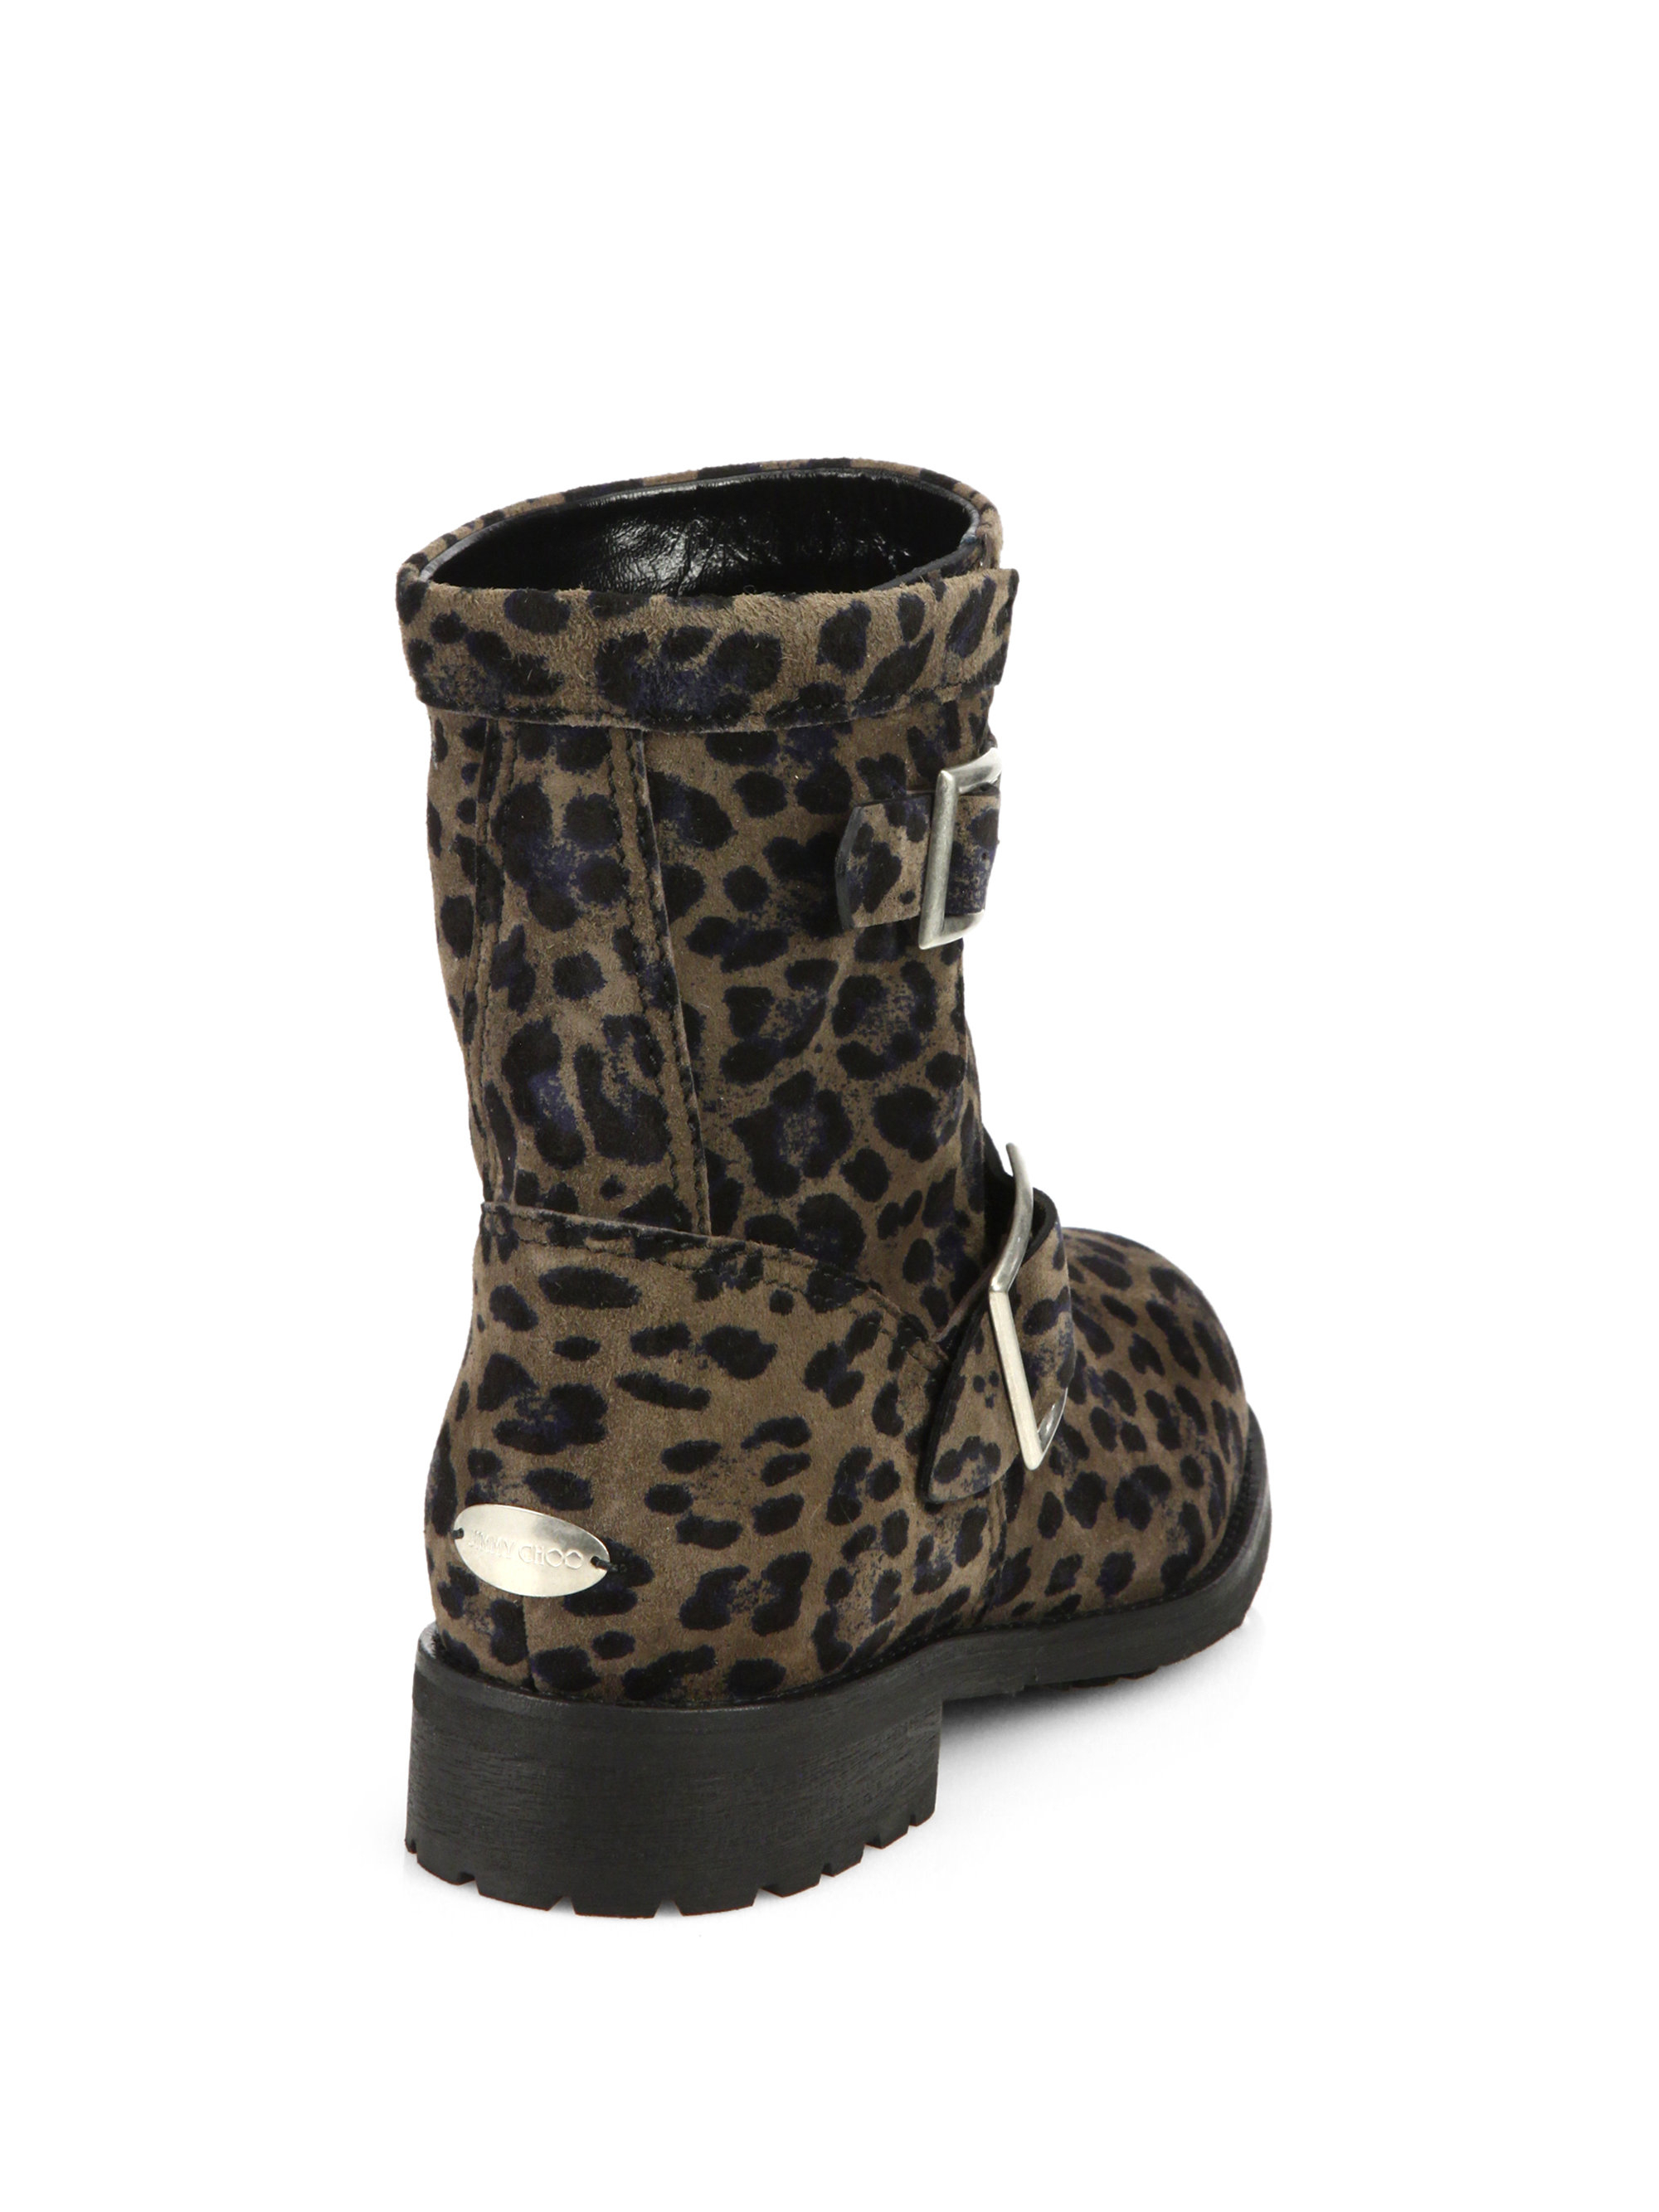 2102f520e49 ... calf hair ankle boots in brown ddb0e 33ff8  get lyst jimmy choo leopard  print suede biker boots in natural 5f6f8 e04bc